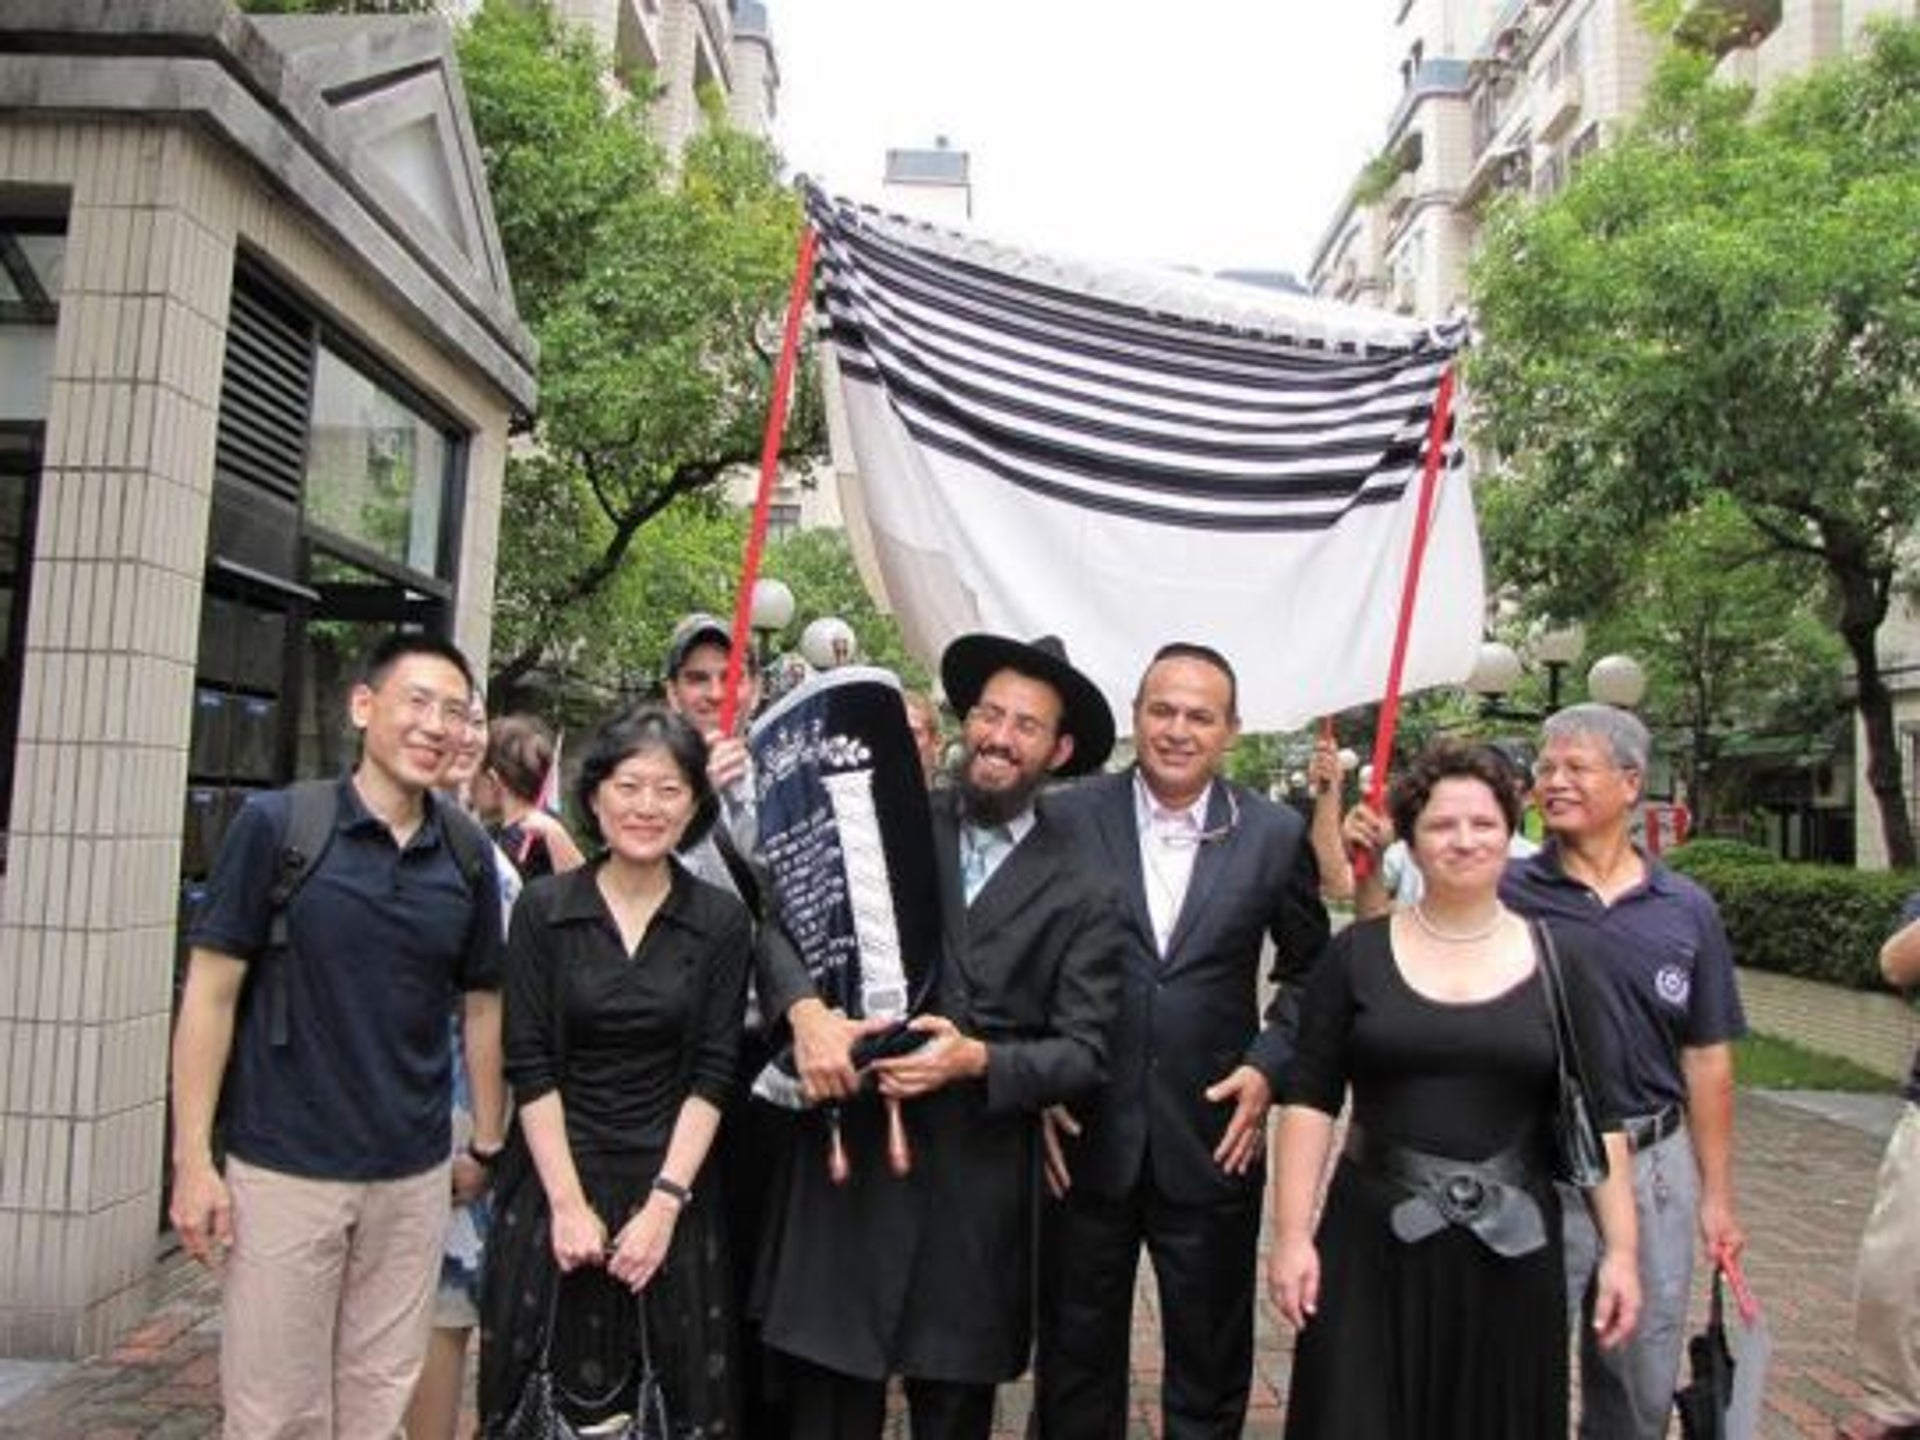 Members of Taiwan's Jewish community, with Rabbi Shlomi Tabib holding the Torah, at a procession for the dedication of a new Torah scroll. A tallit is held above the rabbi and the Torah, as if to form a wedding huppah.